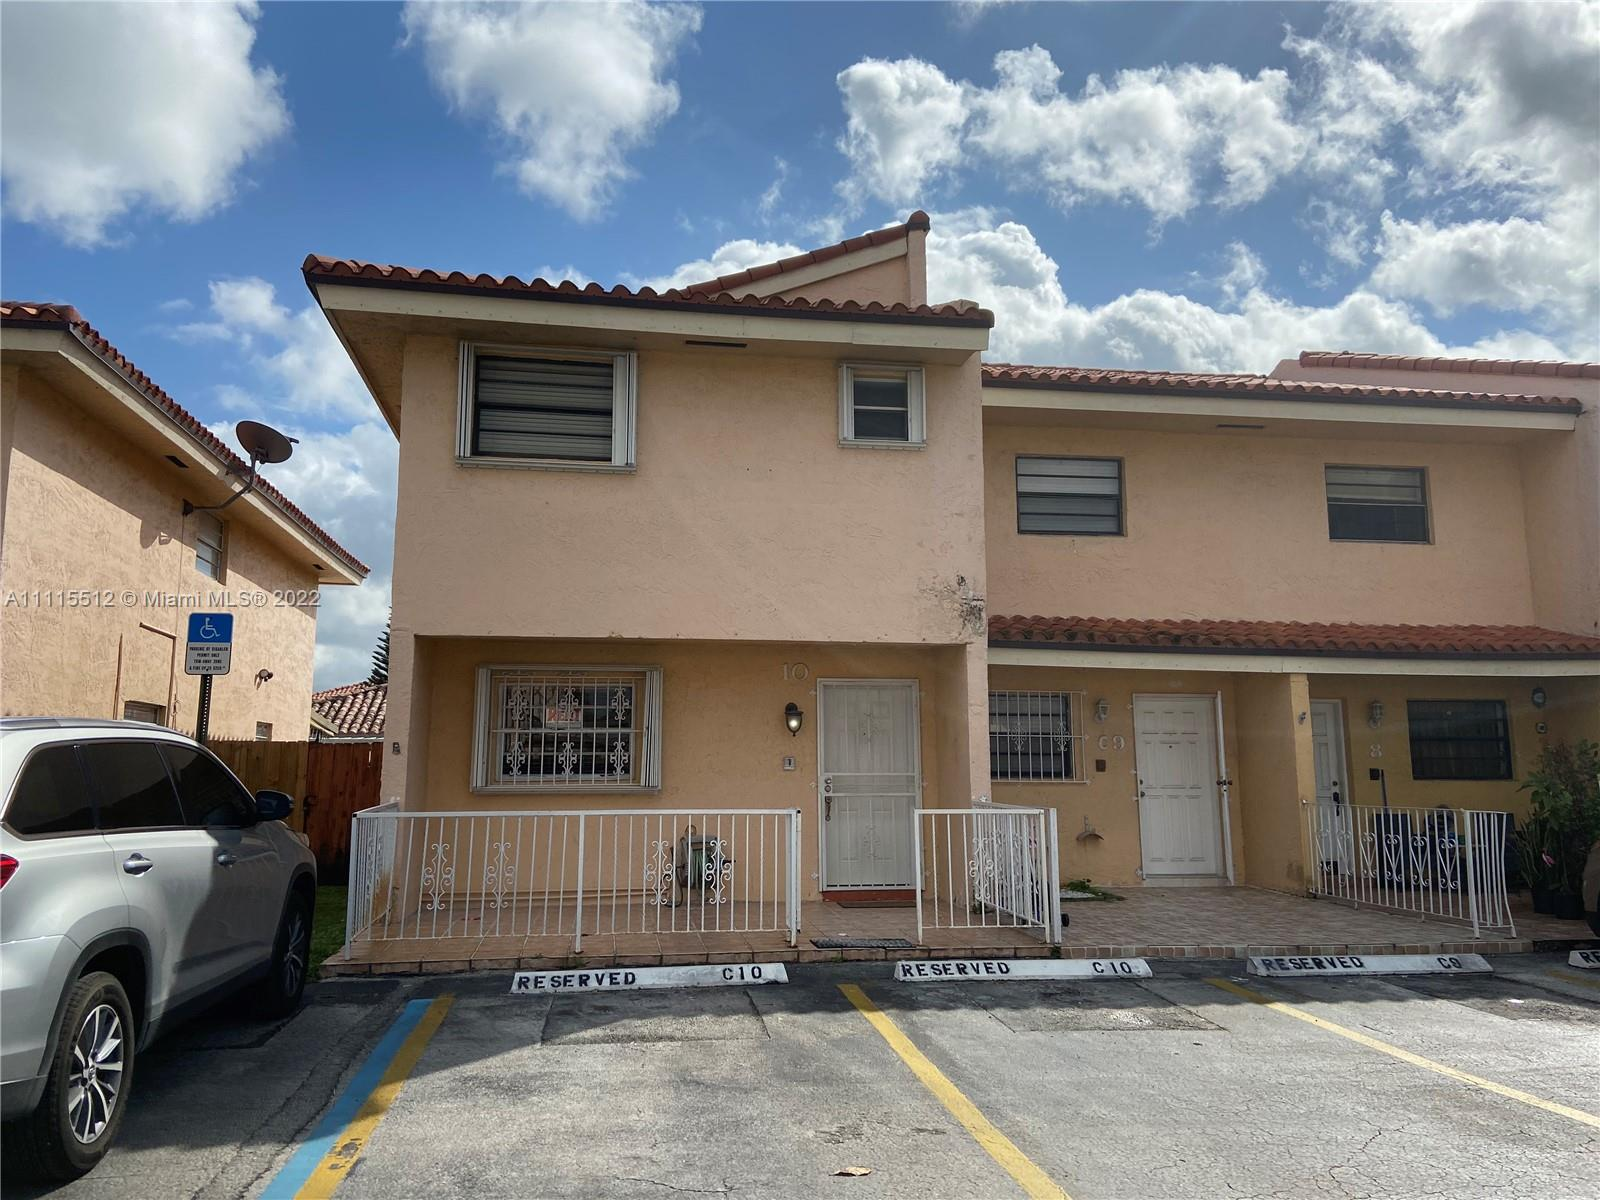 Single Family Home,For Sale,550 SW 115th Ave, Sweetwater, Florida 33174,Brickell,realty,broker,condos near me